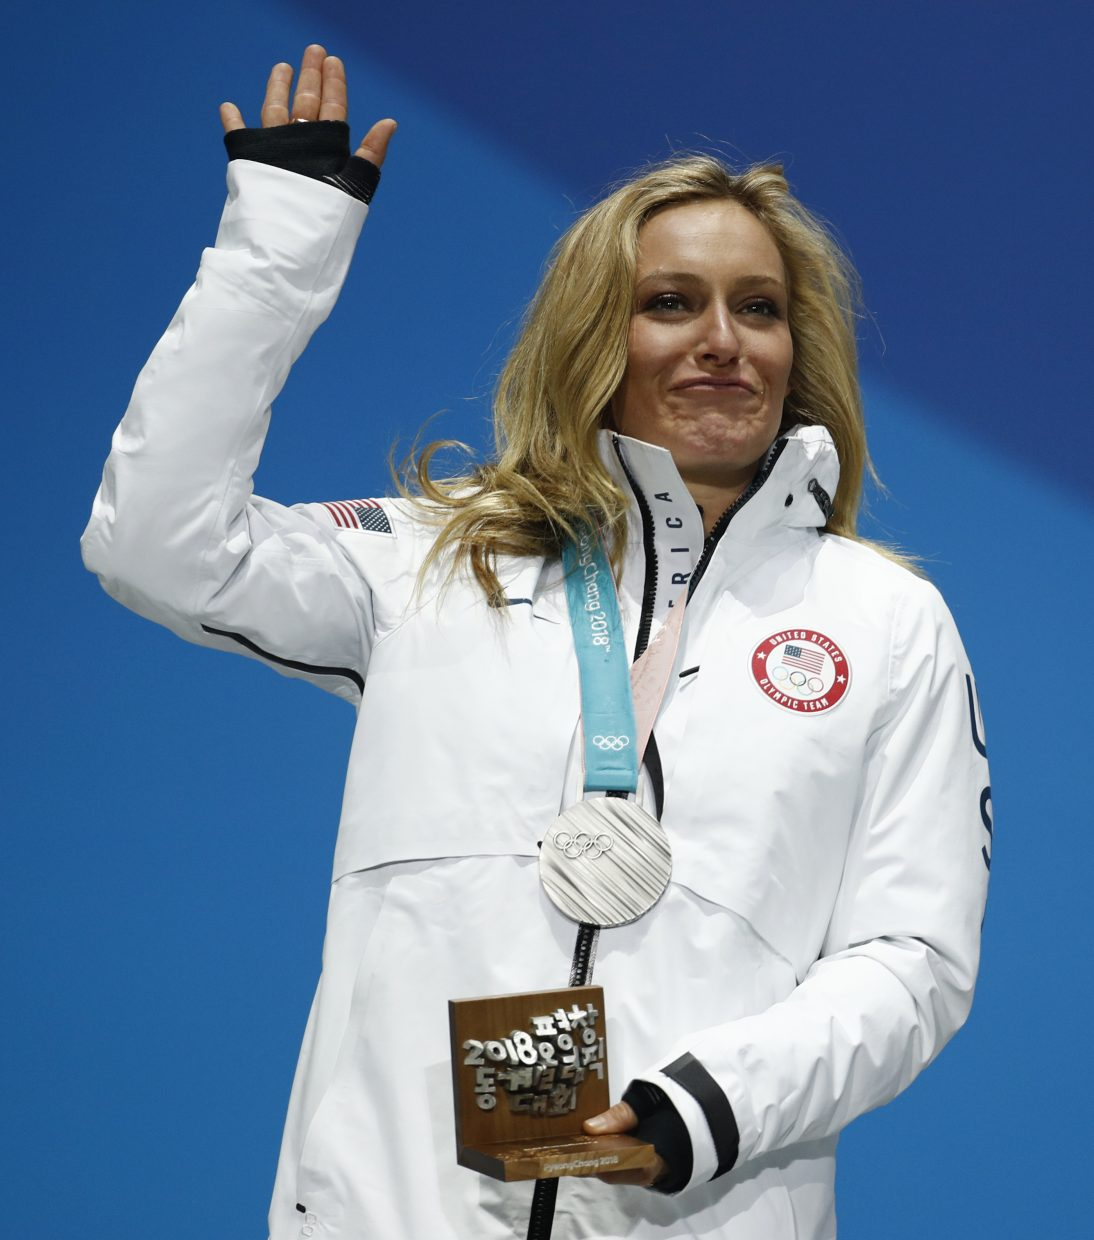 Silver medalist in the women's Big Air snowboard Jamie Anderson, of the United States, waves during the medals ceremony at the 2018 Winter Olympics in Pyeongchang, South Korea, Thursday, Feb. 22, 2018.